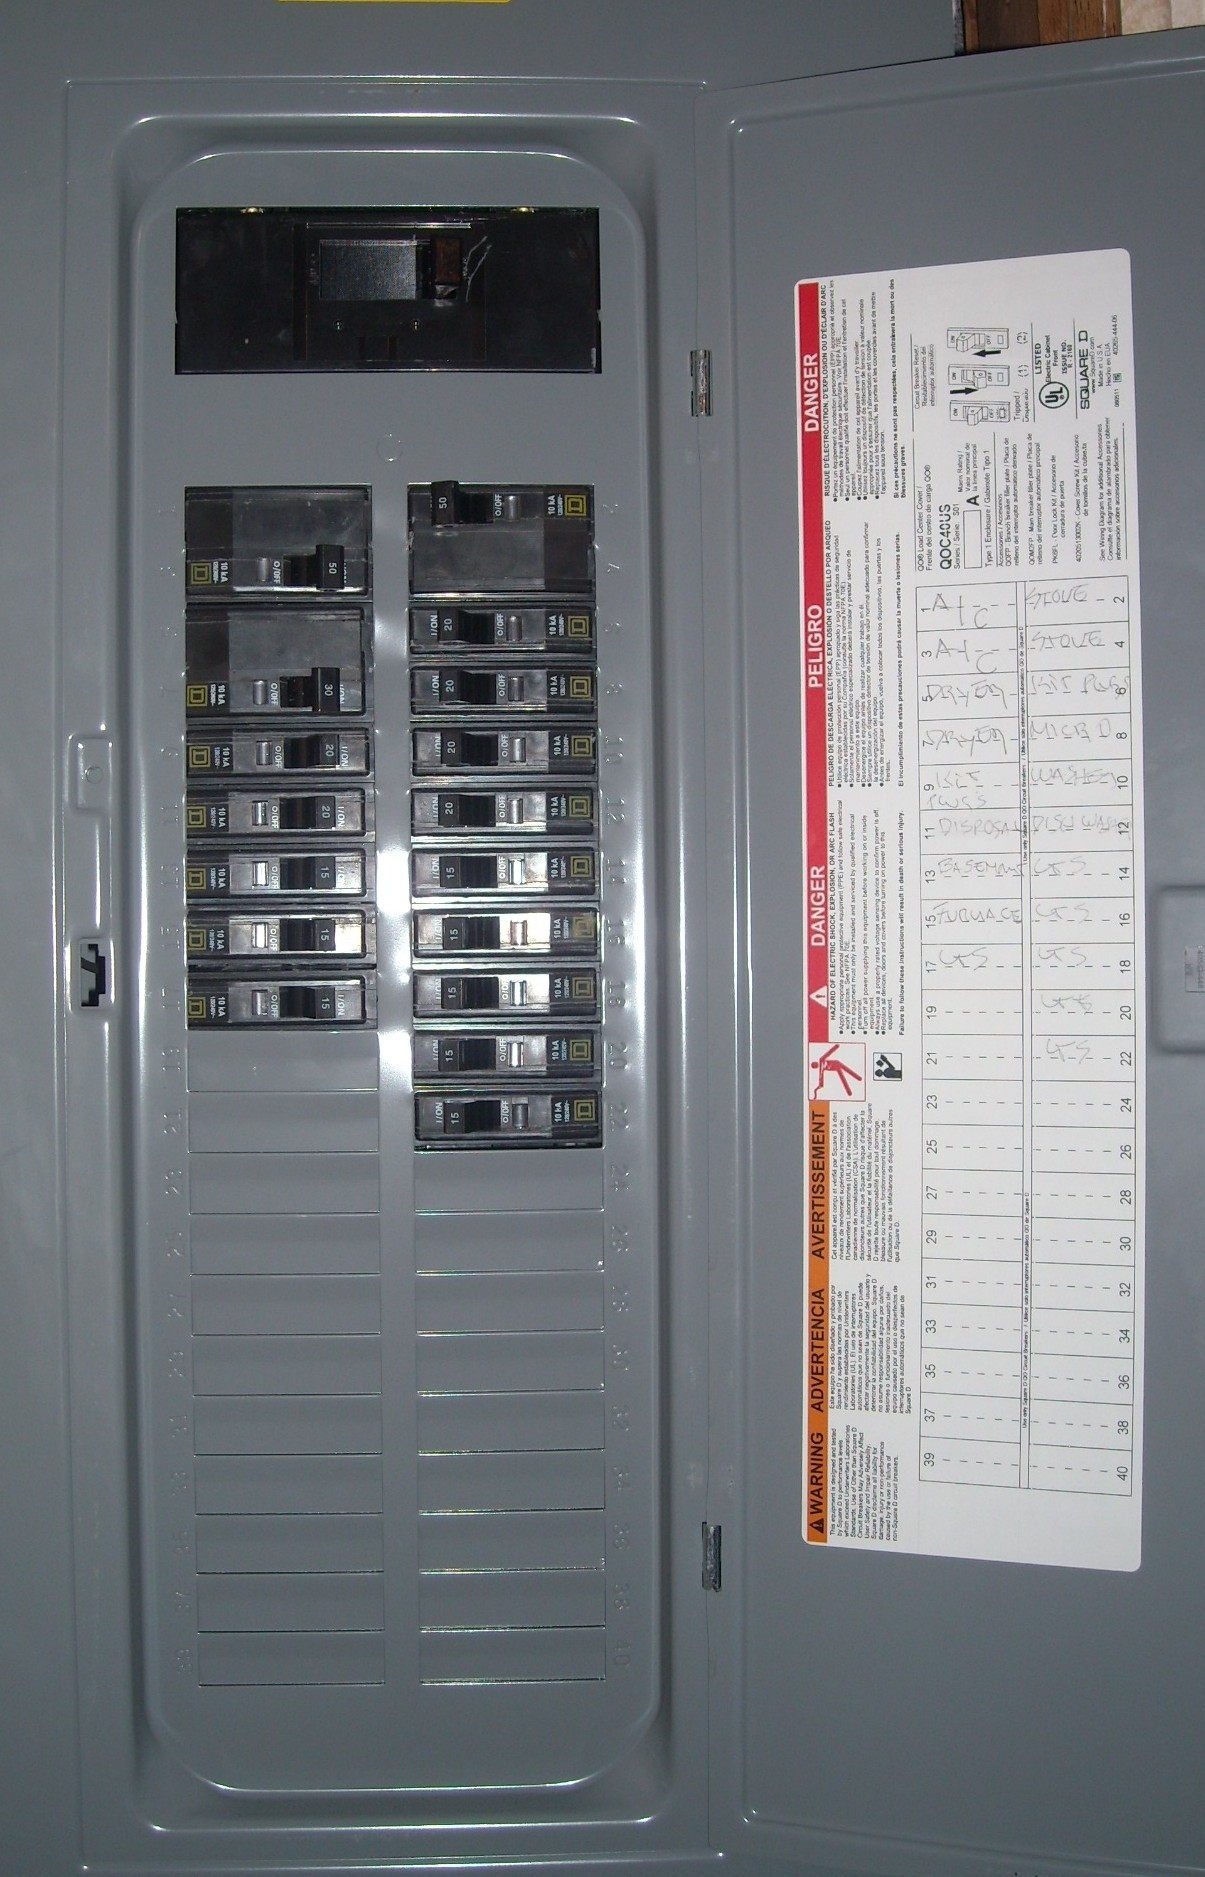 Fuse Box Or Breaker Box : Hot water switch in fuse box wiring diagram images